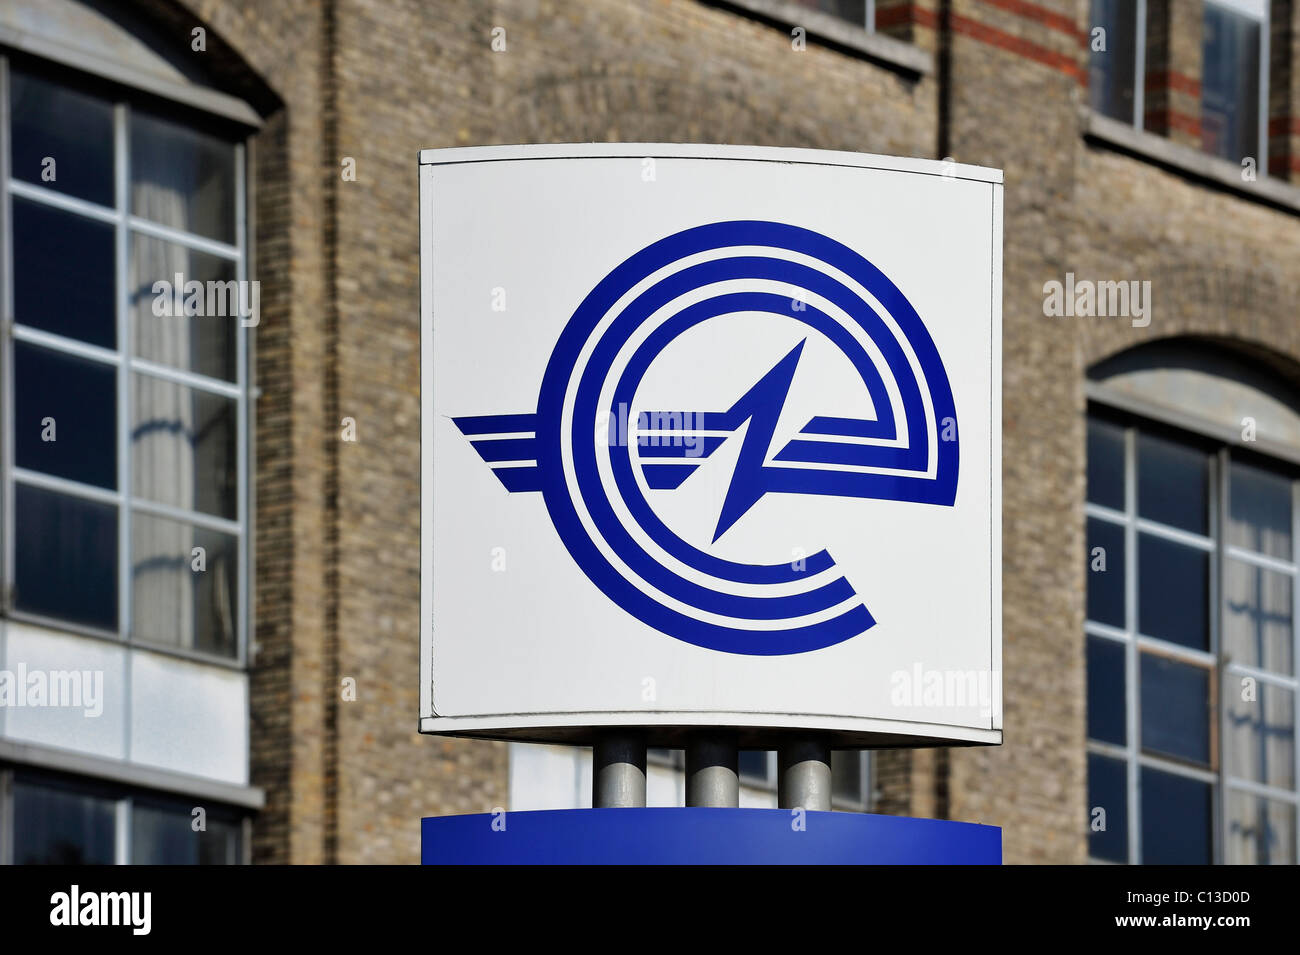 Sign with logo of energy corporation Electrabel, Ghent, Belgium - Stock Image